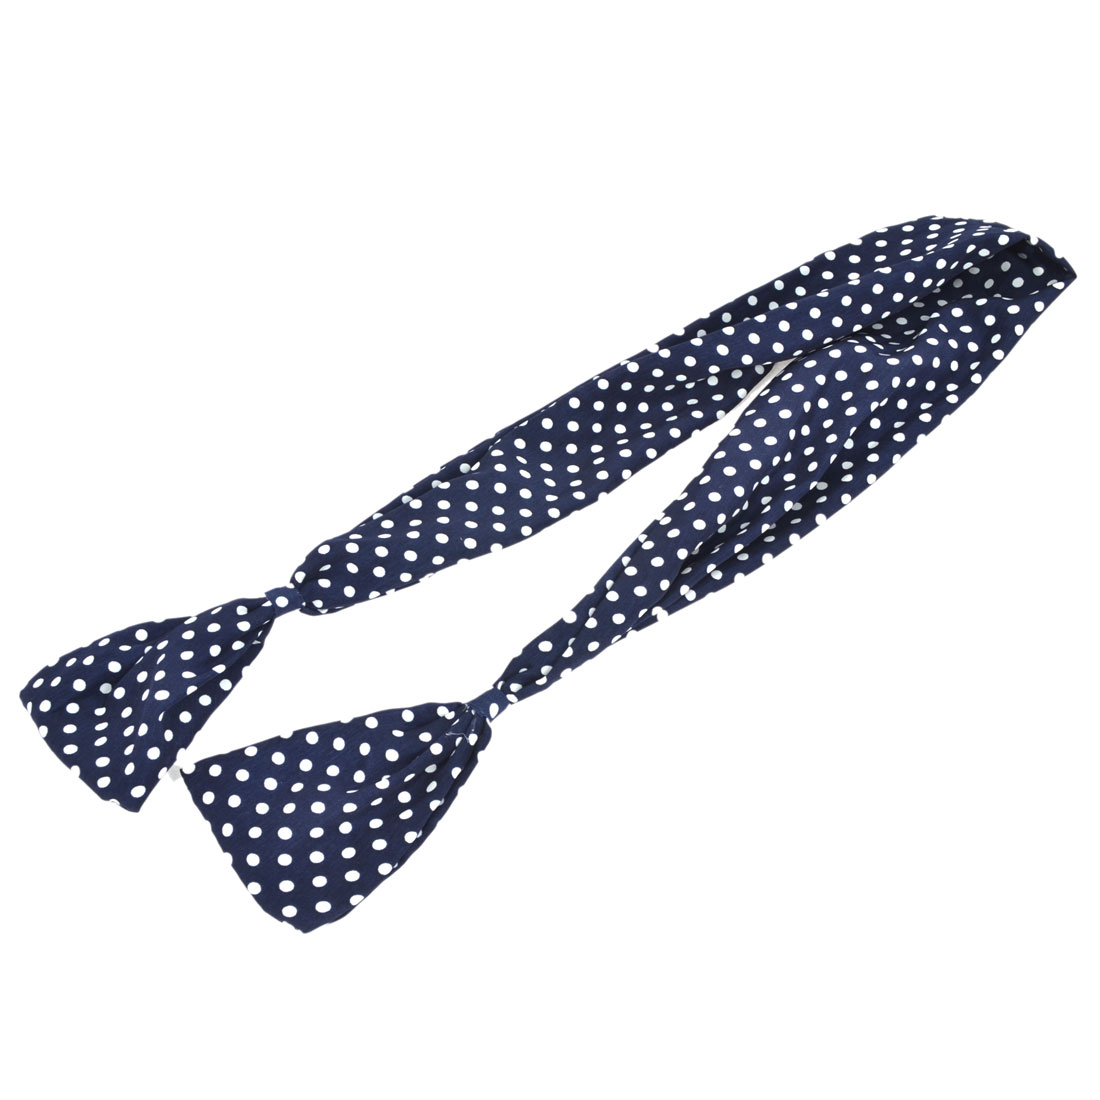 White Dots Pattern Chiffon Wrapped Wired Bunny Ear Headwrap Dark Blue for Ladies